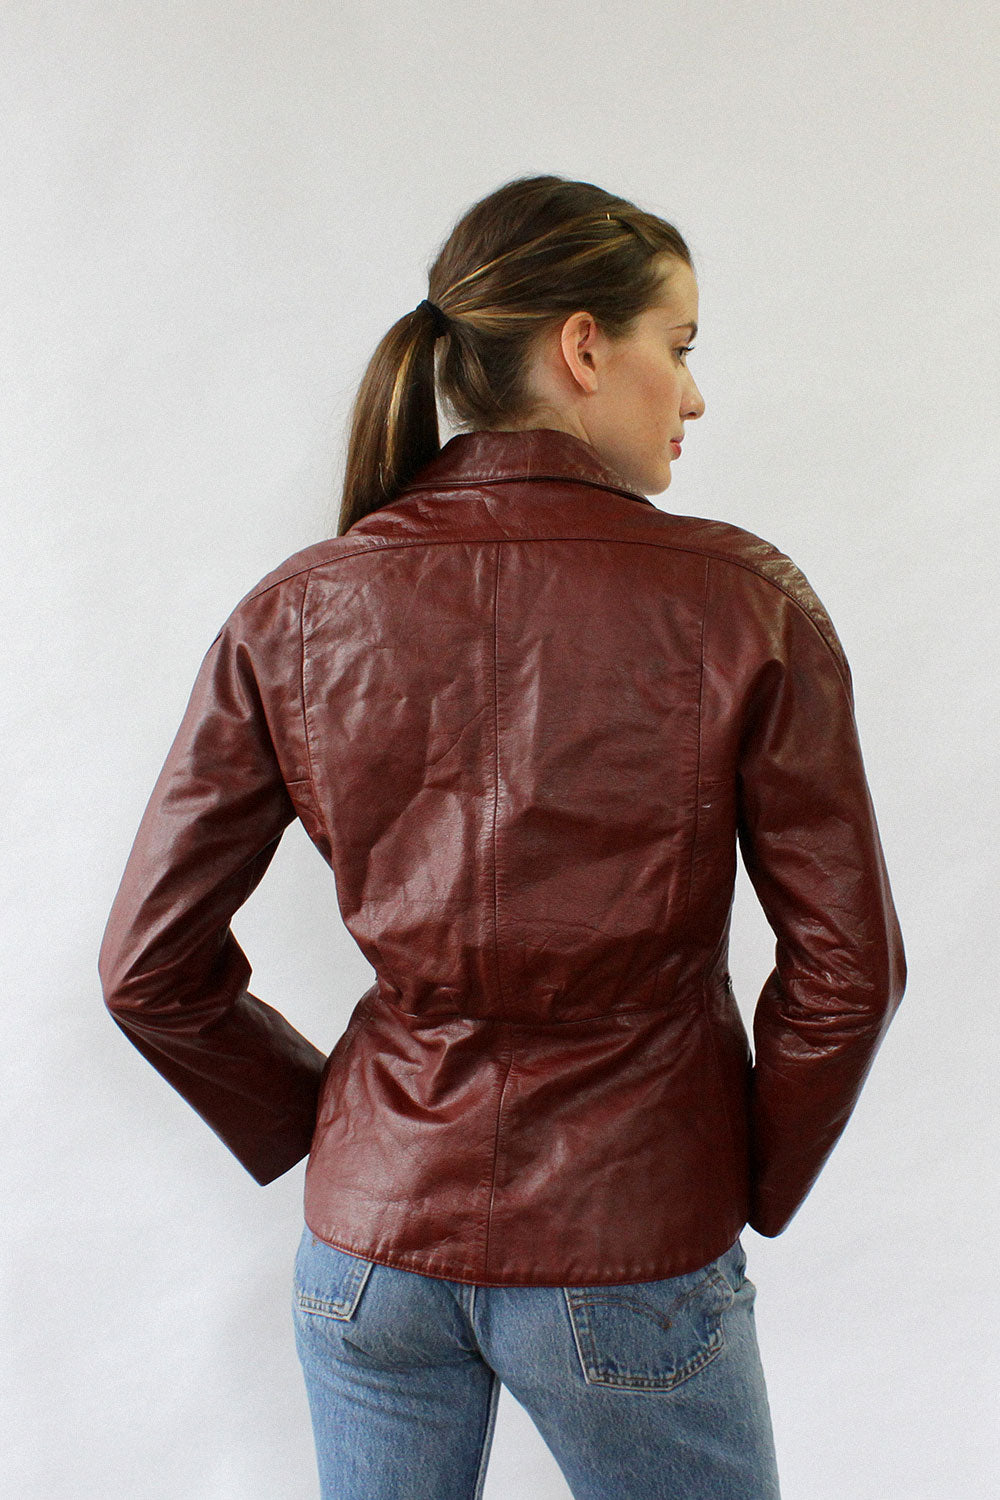 Etienne Aigner Leather Blazer M